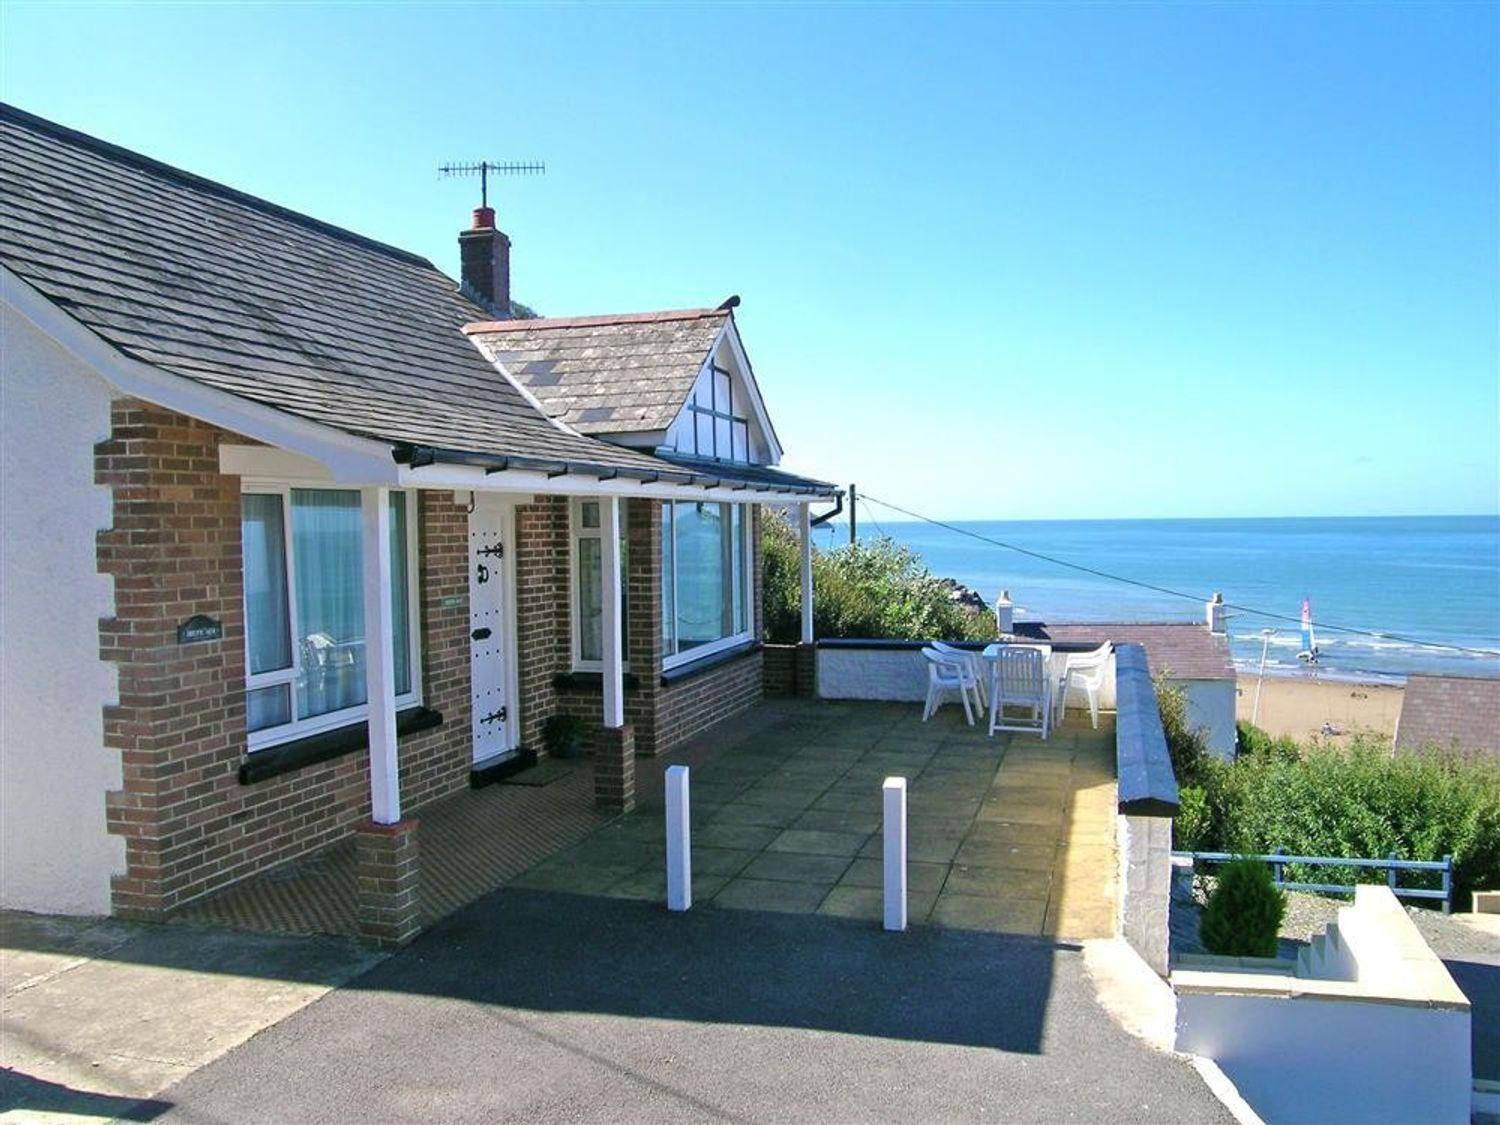 Tresaith Beach Holiday Bungalow